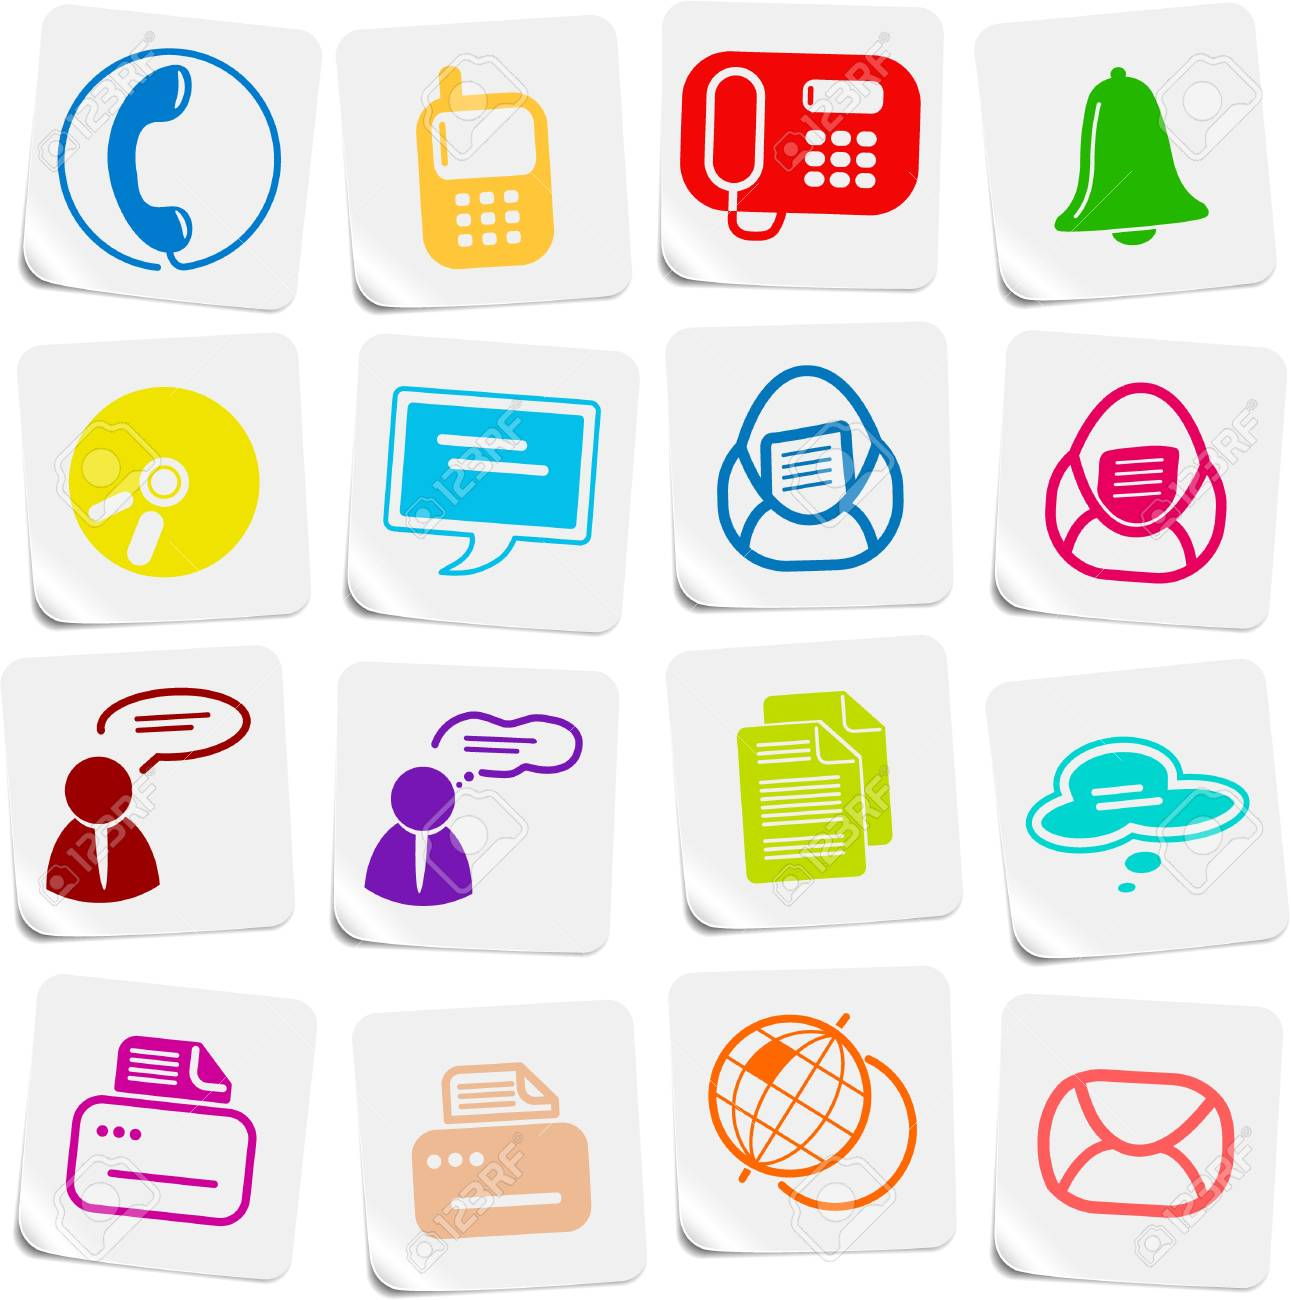 Miscellaneous office and communication vector icons Stock Vector - 5169788